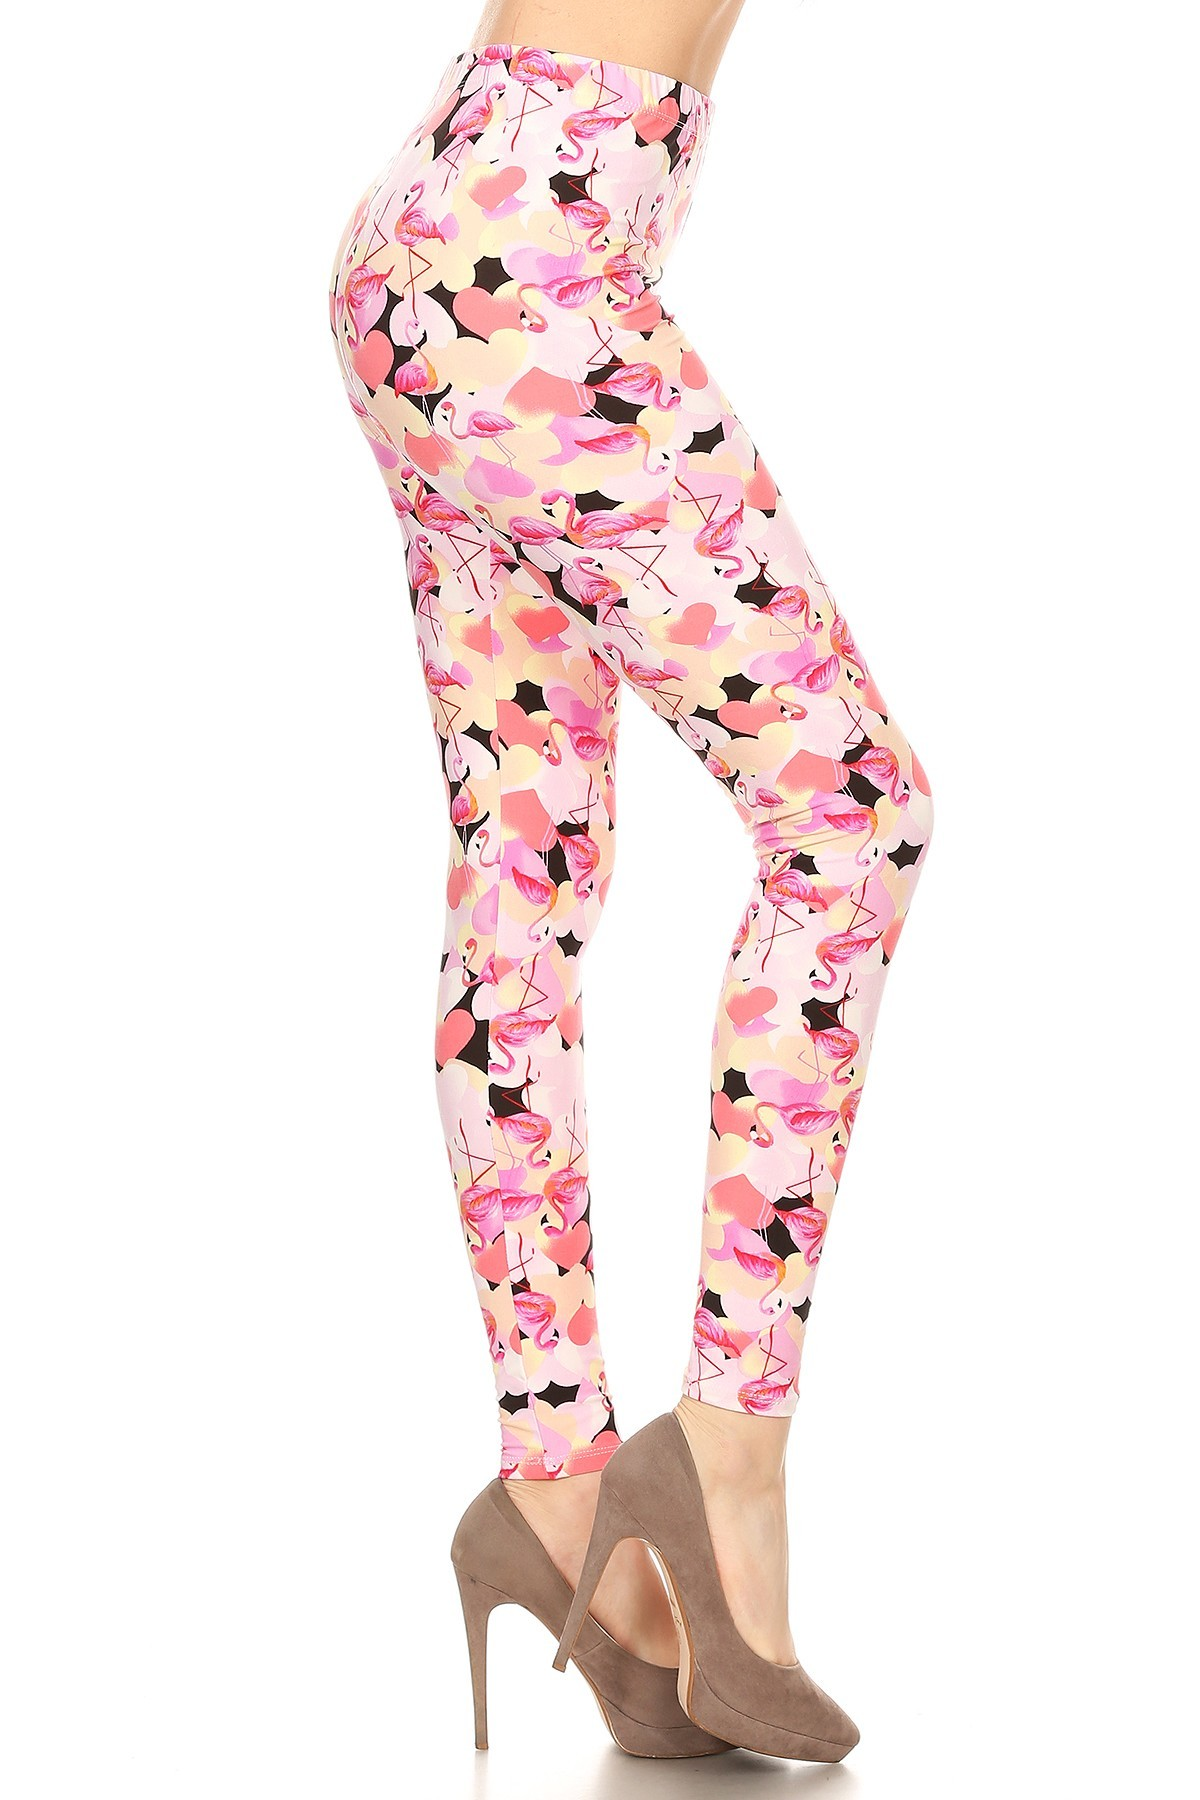 ae53409161cd53 Side of Buttery Soft Gorgeous Pink Flamingos Plus Size Leggings - 3X-5X